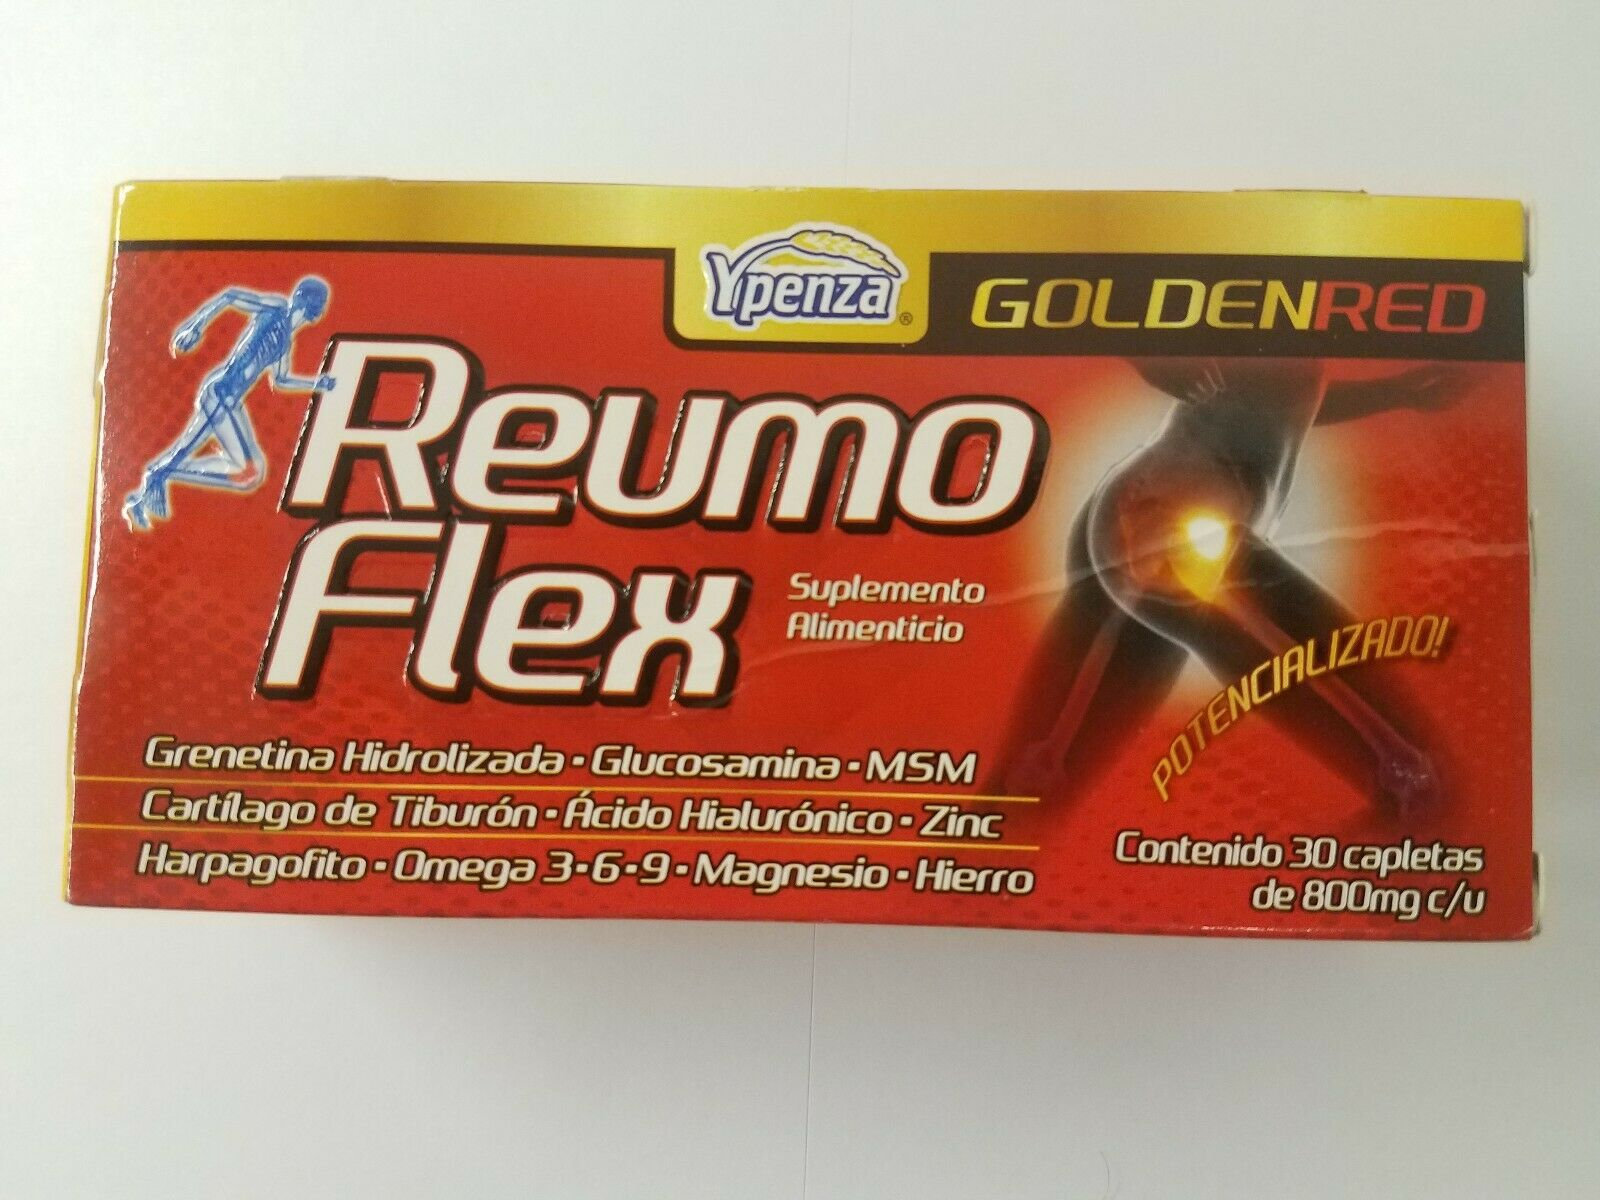 Reumo Flex GOLDEN RED Relieves Joints Artritis and Ciatica pain Articulaciones 1